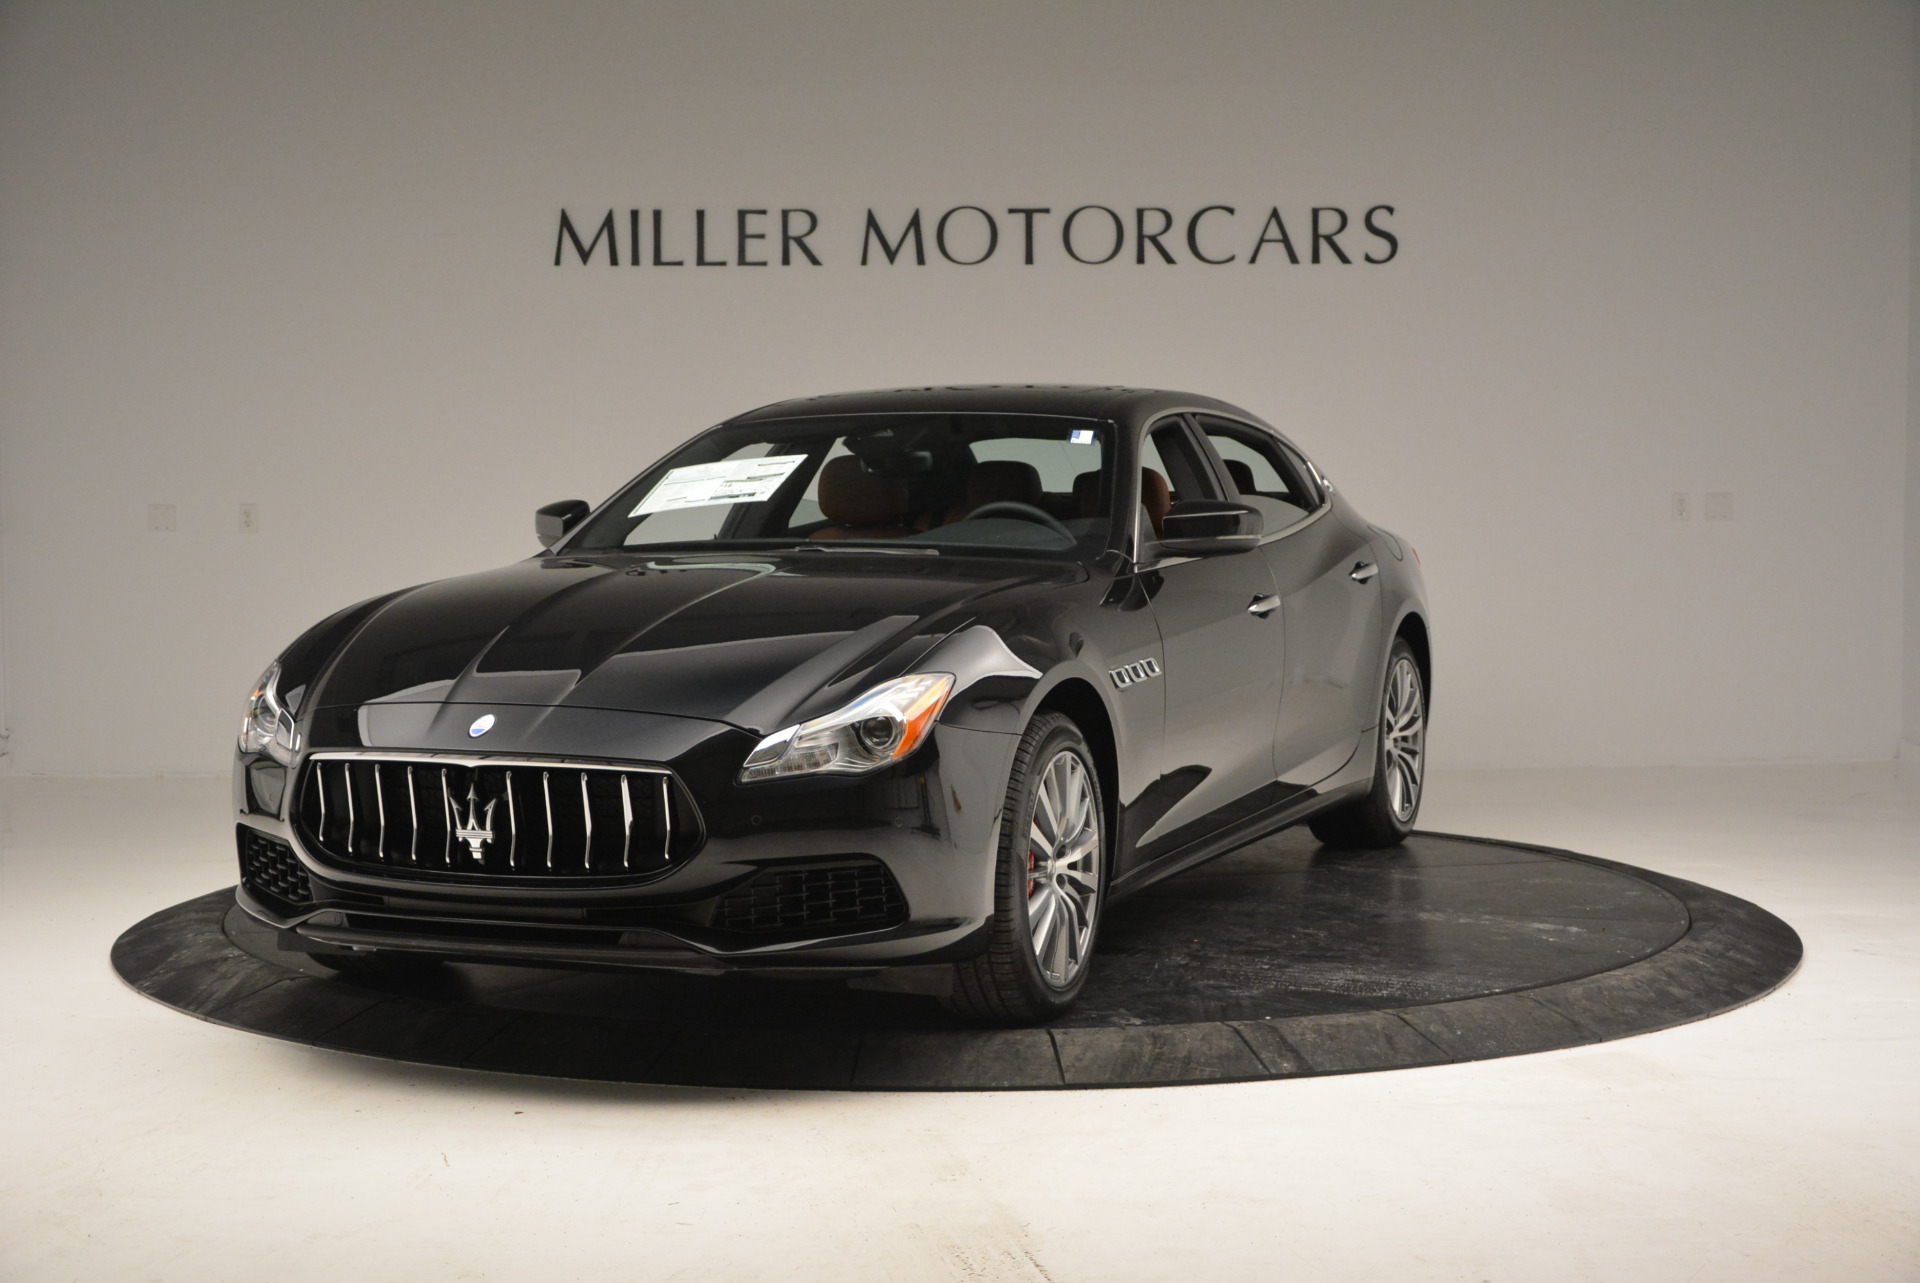 New 2017 Maserati Quattroporte S Q4 for sale Sold at Pagani of Greenwich in Greenwich CT 06830 1